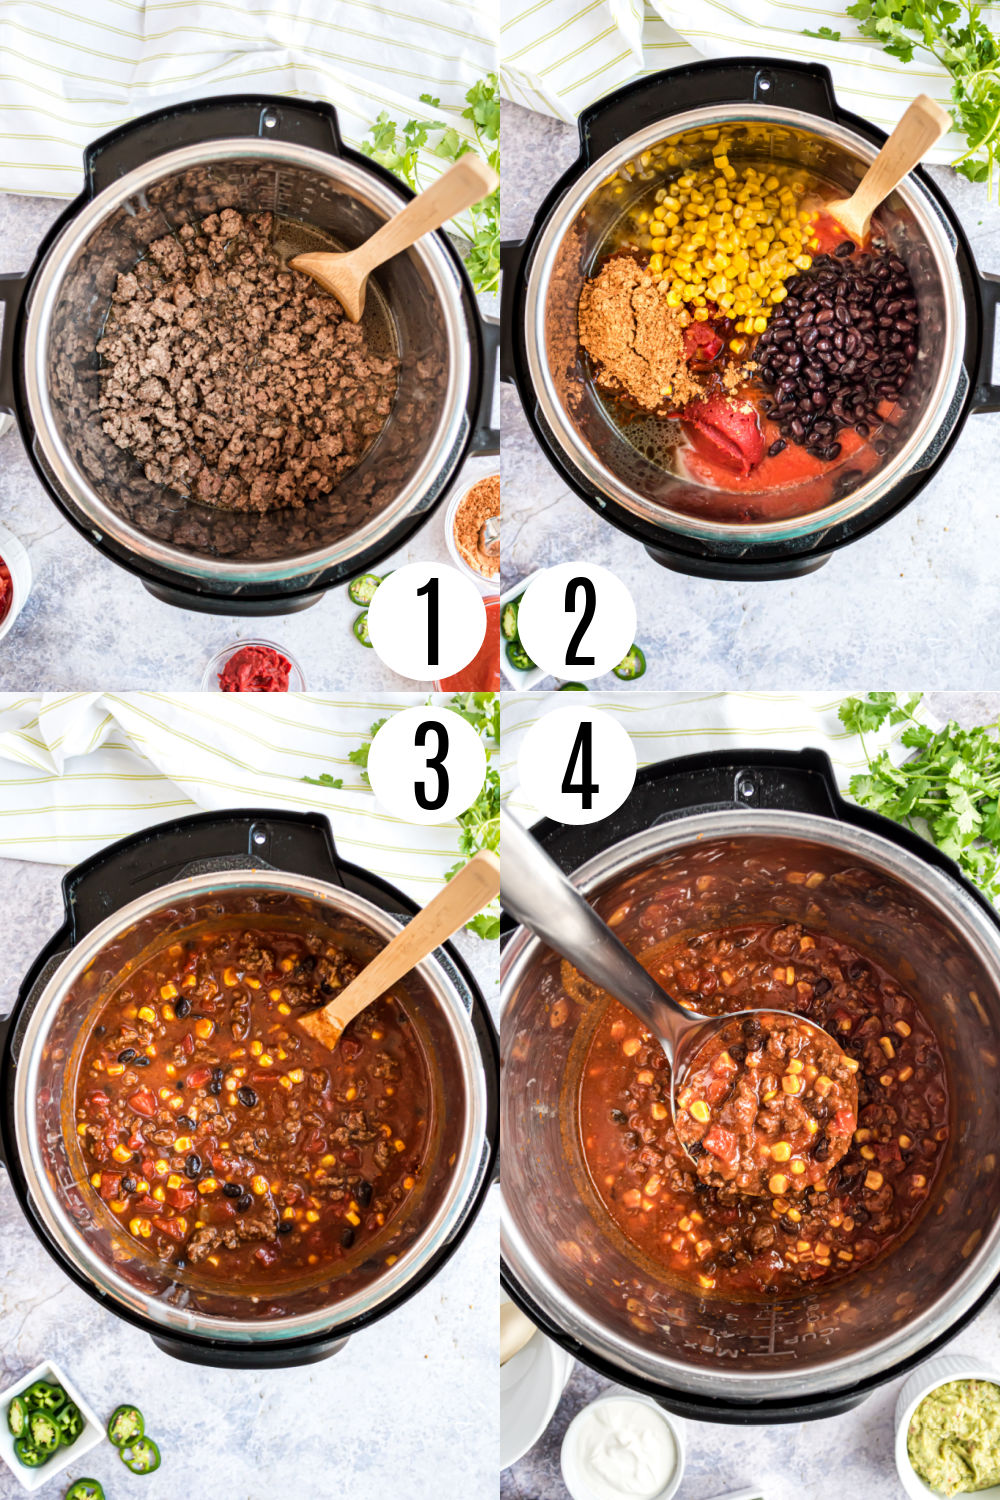 Step by step photos showing how to make taco chili in the pressure cooker.